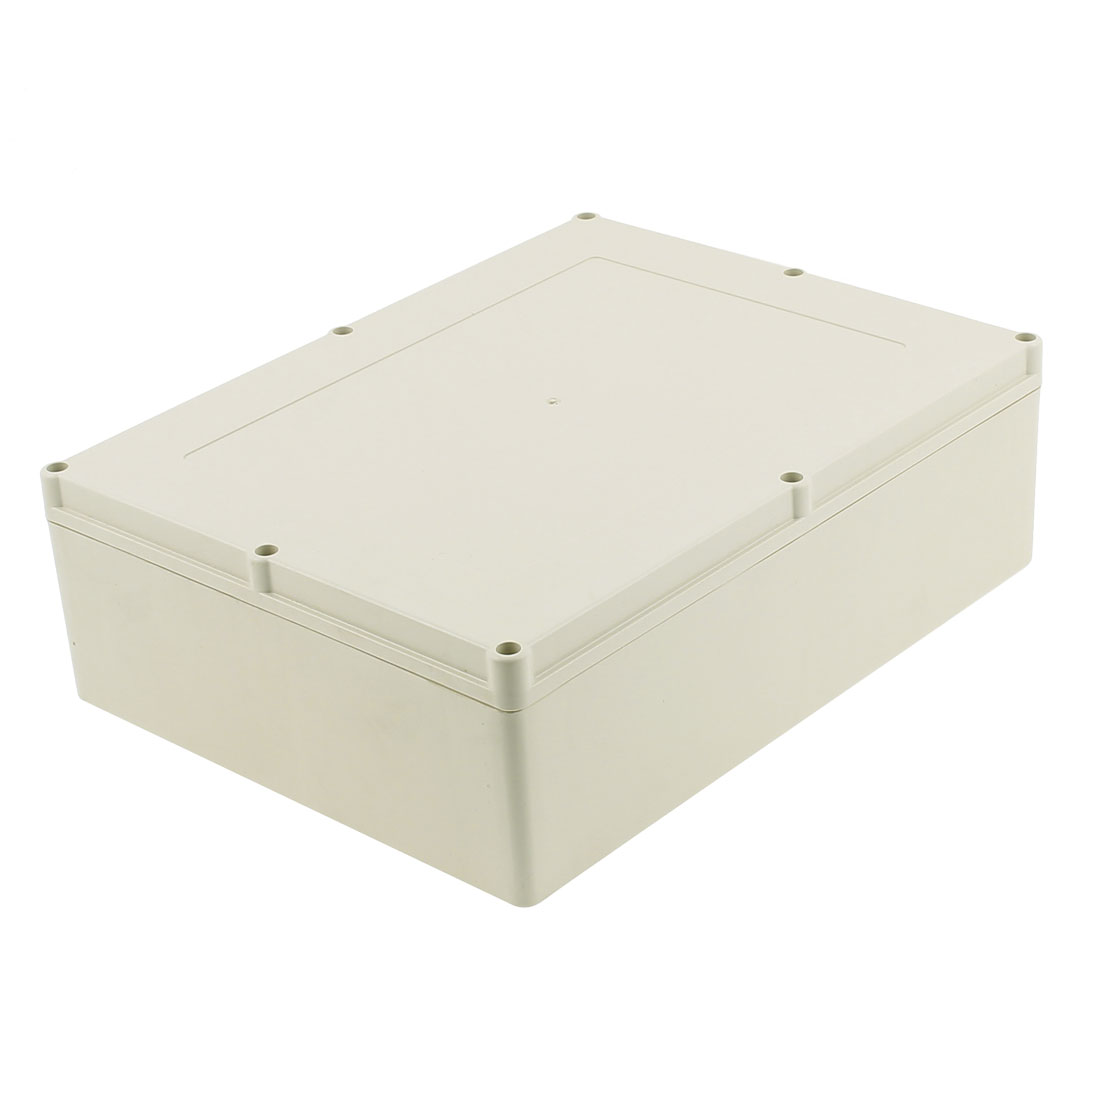 300 x 230 x 92mm Dustproof IP65 Junction Box Terminal Connecting Box Enclosure